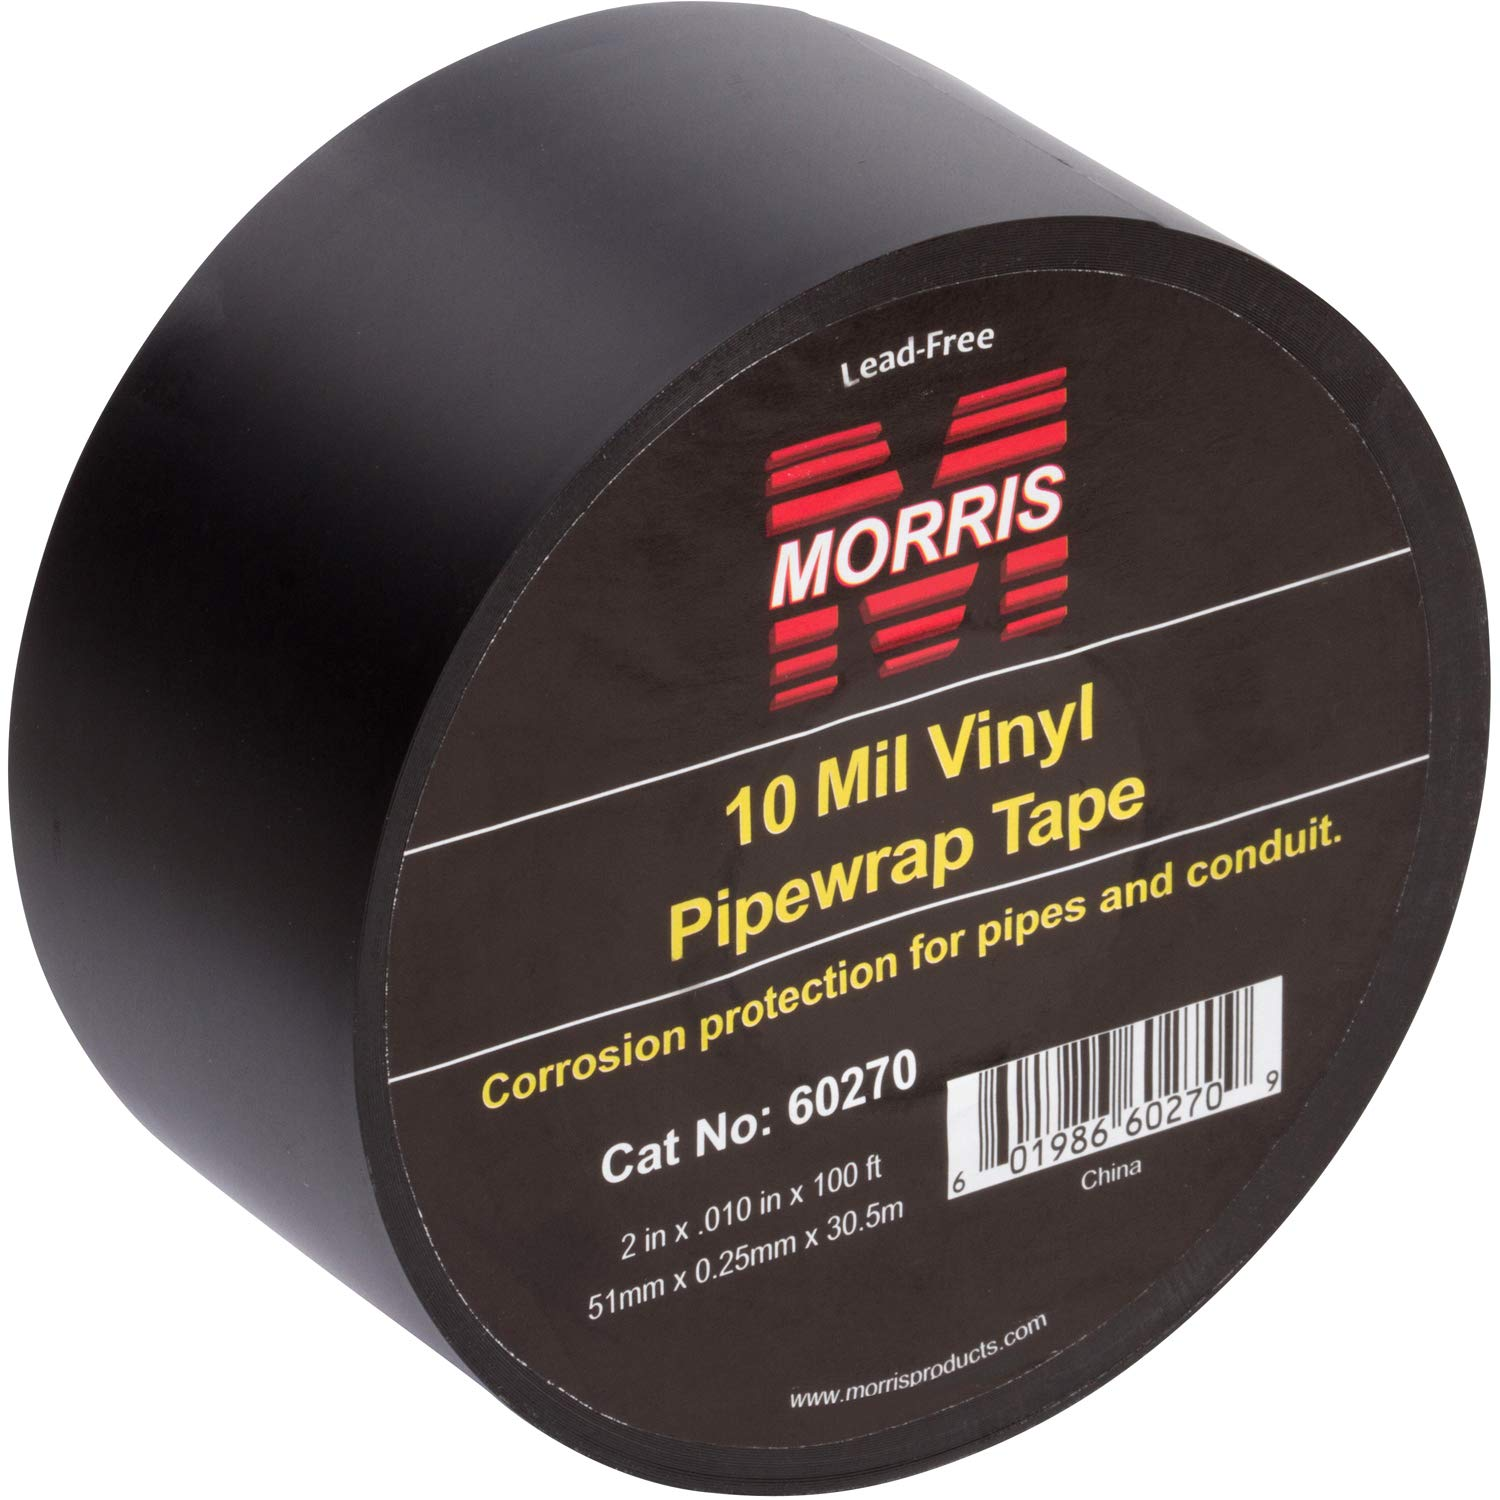 """Morris Products Black Pipe Wrap Tape – 2"""" x 100 Ft x 10 Mil, 2-Inch Width – Self Amalgamating Heavy Gauge, Pressure Sensitive, Vinyl – Protection for Pipes, Conduit, Joints, Valves – Indoor/Outdoor"""